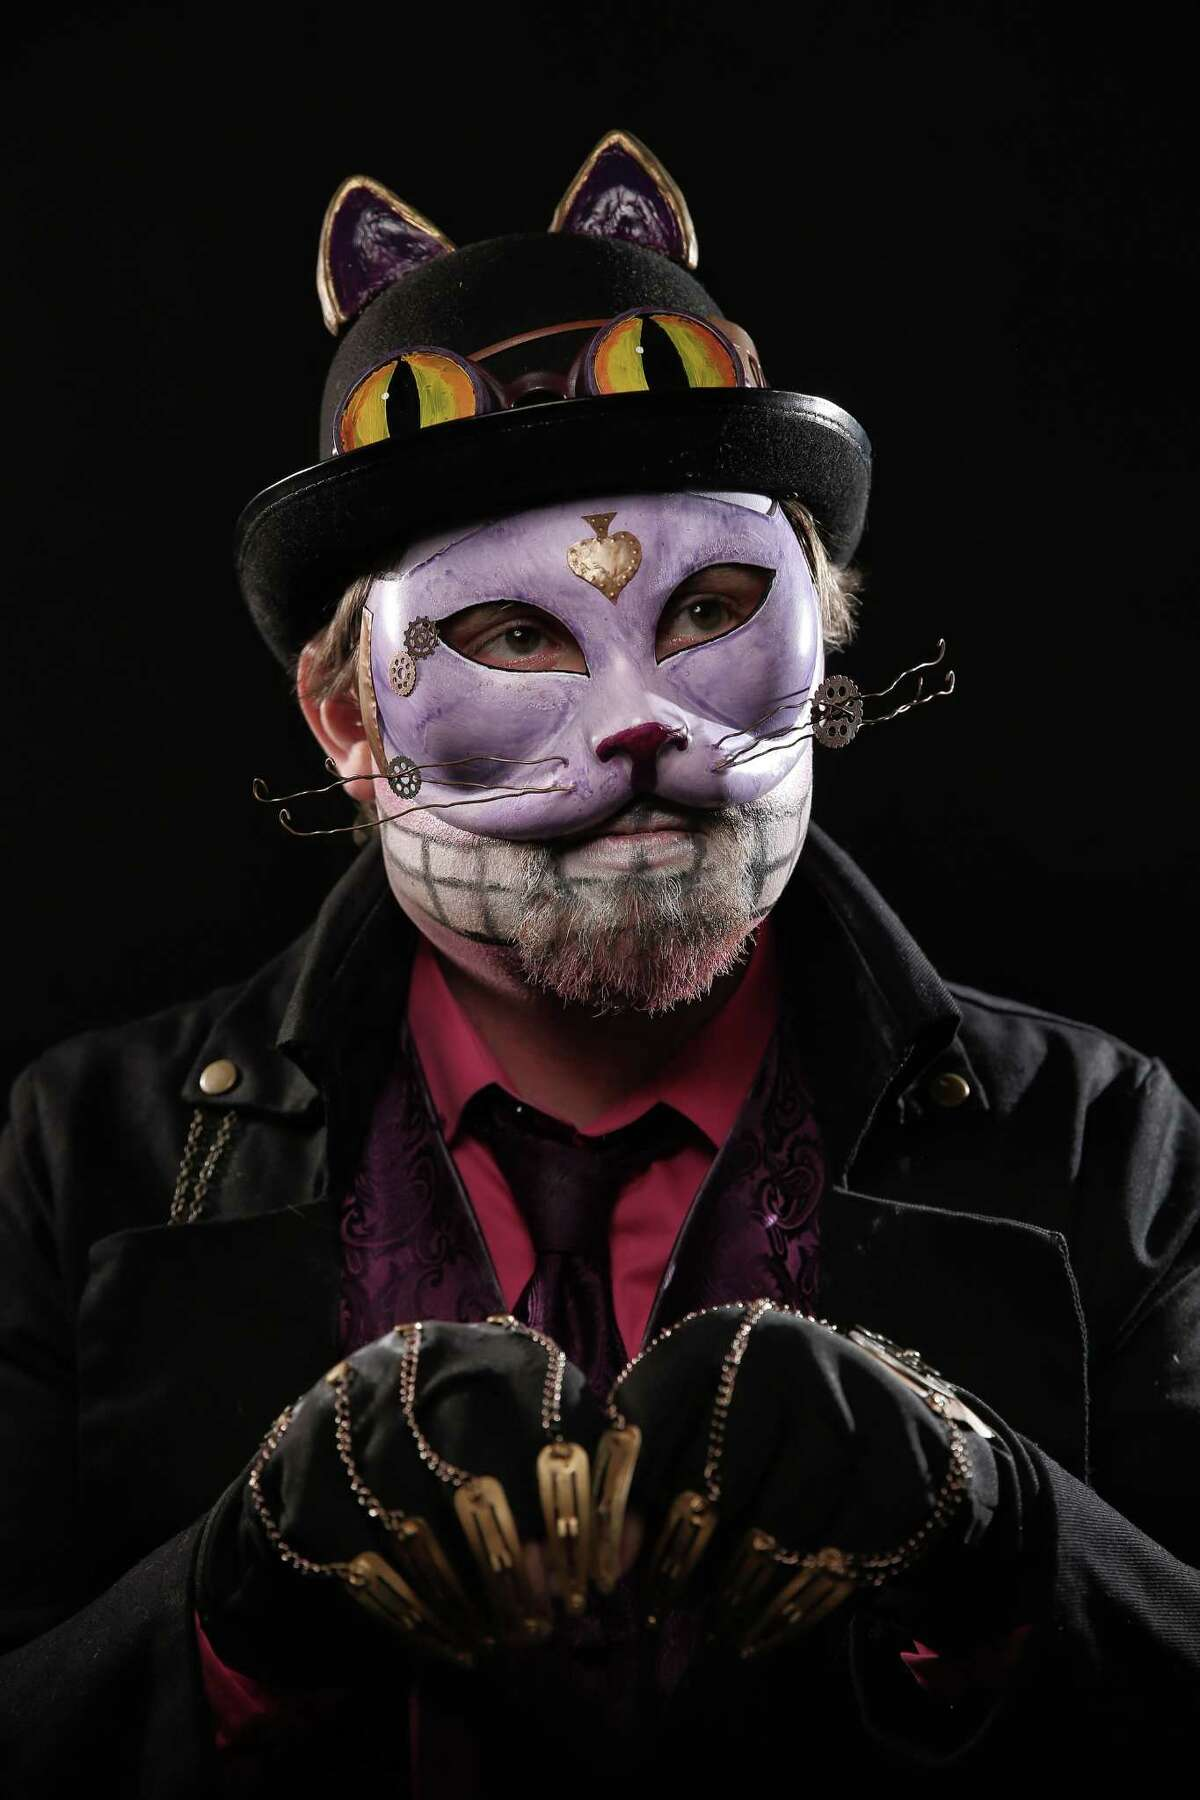 The Cheshire Cat, portrayed by Aaron Murphy, poses for a portrait at Emerald City Comicon at the Washington State Convention Center on Sunday, March 5, 2017